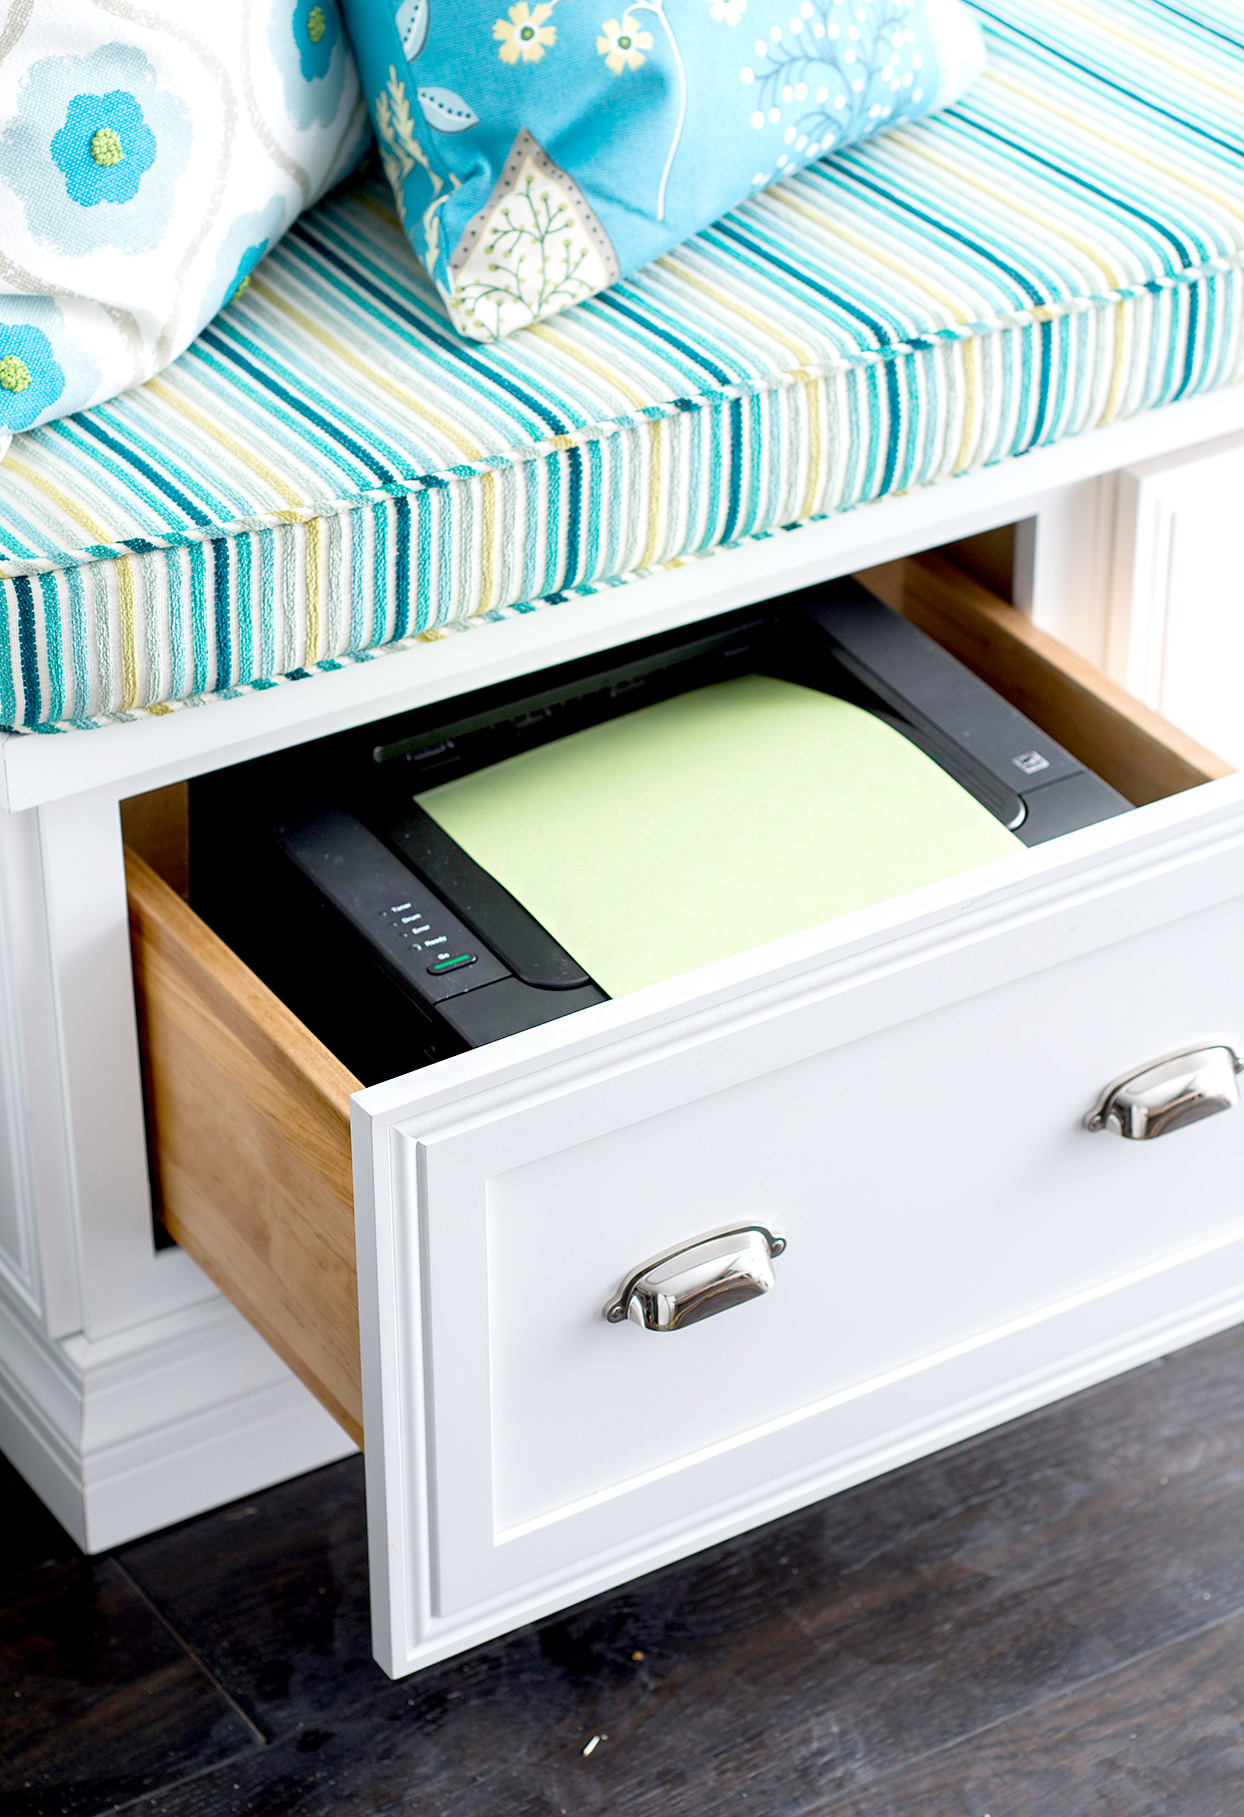 Drawer in furniture with pillows